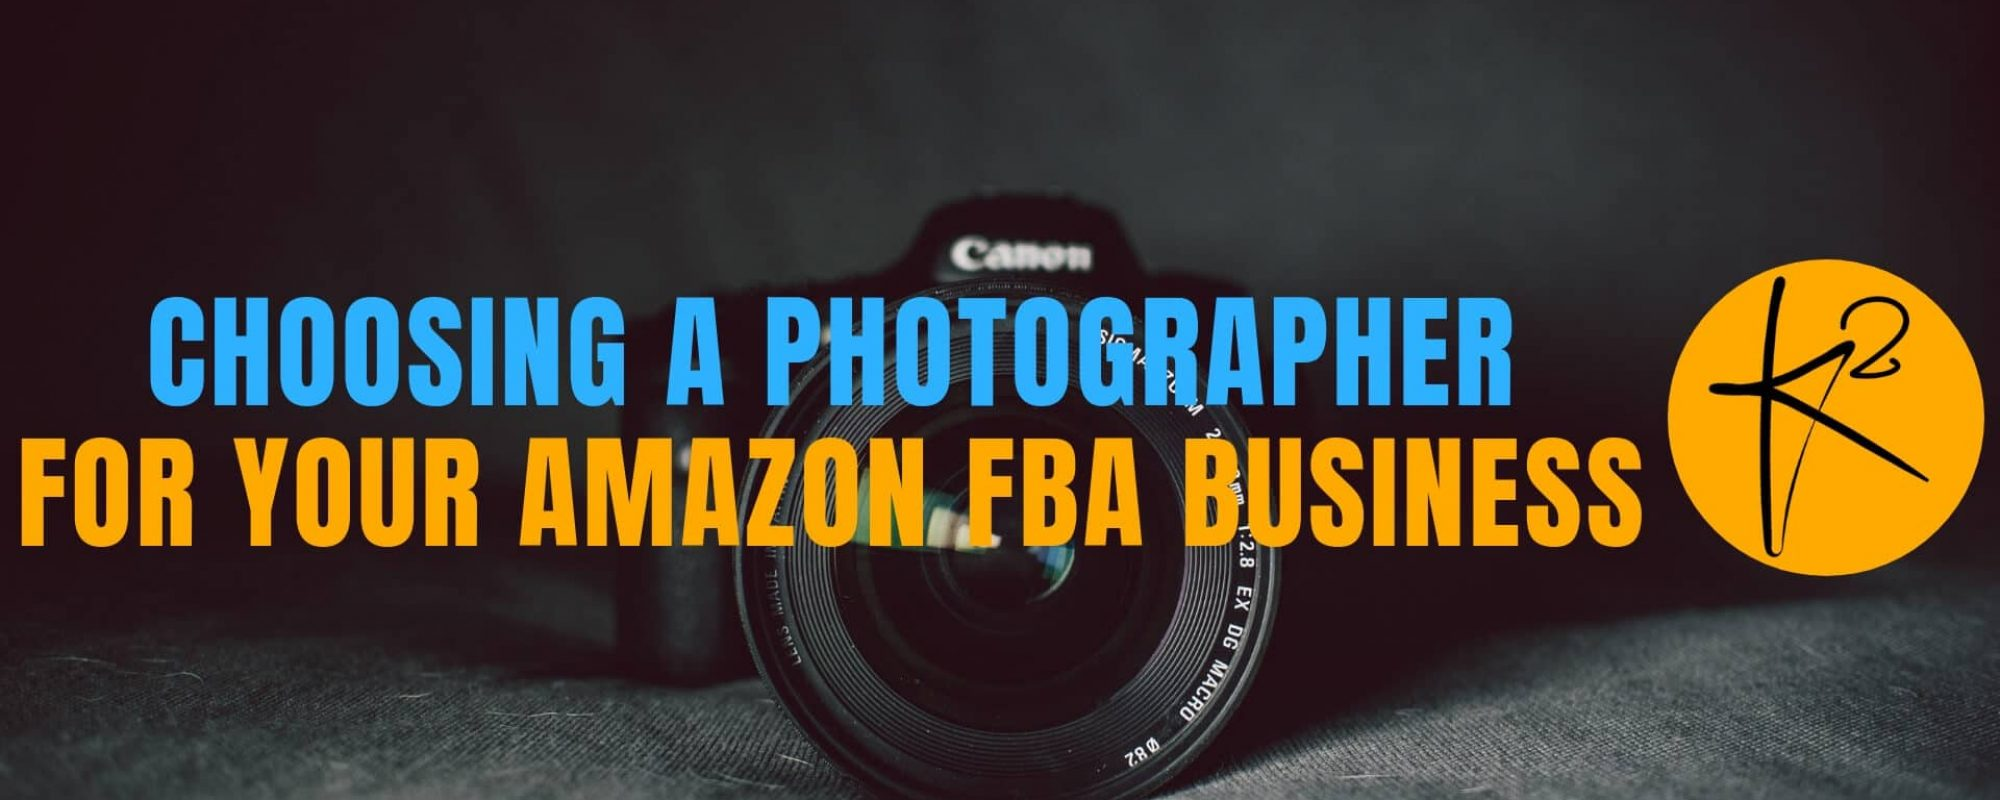 Amazon FBA Photography